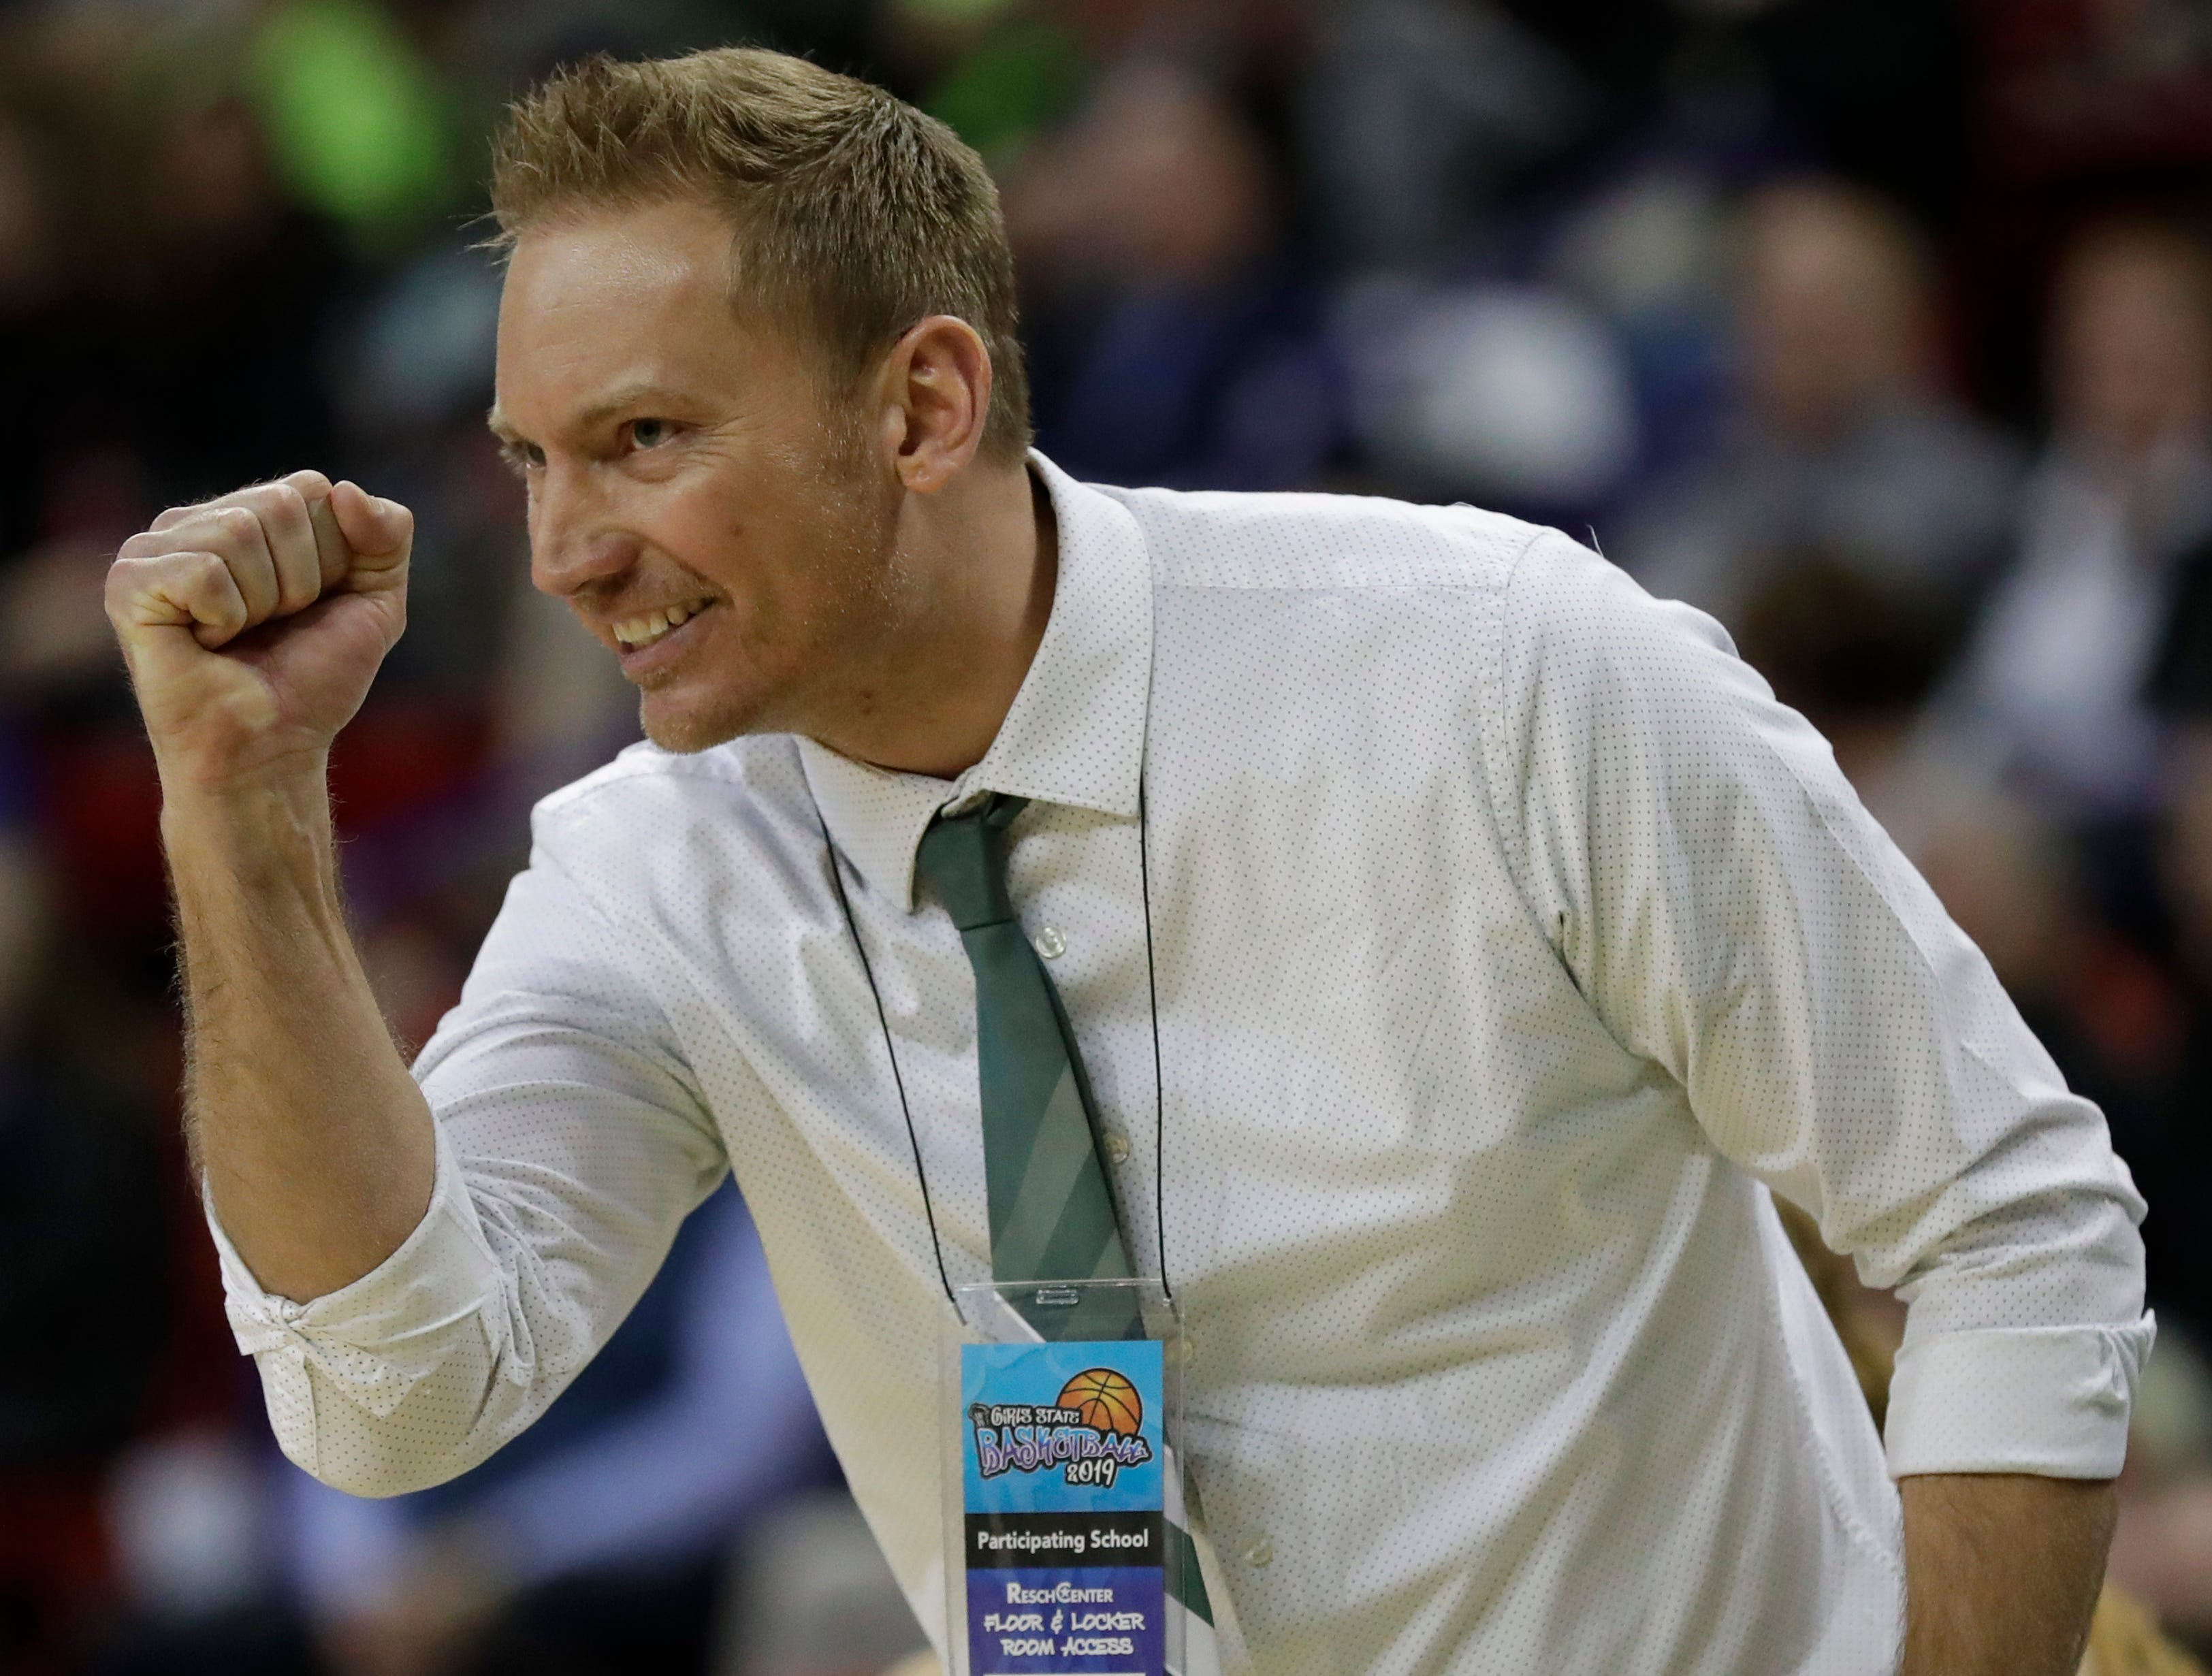 Laconia head coach Chris Morgan celebrates a basket scored late in the game against Freedom during their Division 3 semifinal game at the WIAA girls state basketball tournament Thursday, March 7, 2019, at the Resch Center in Ashwaubenon, Wis. Dan Powers/USA TODAY NETWORK-Wisconsin